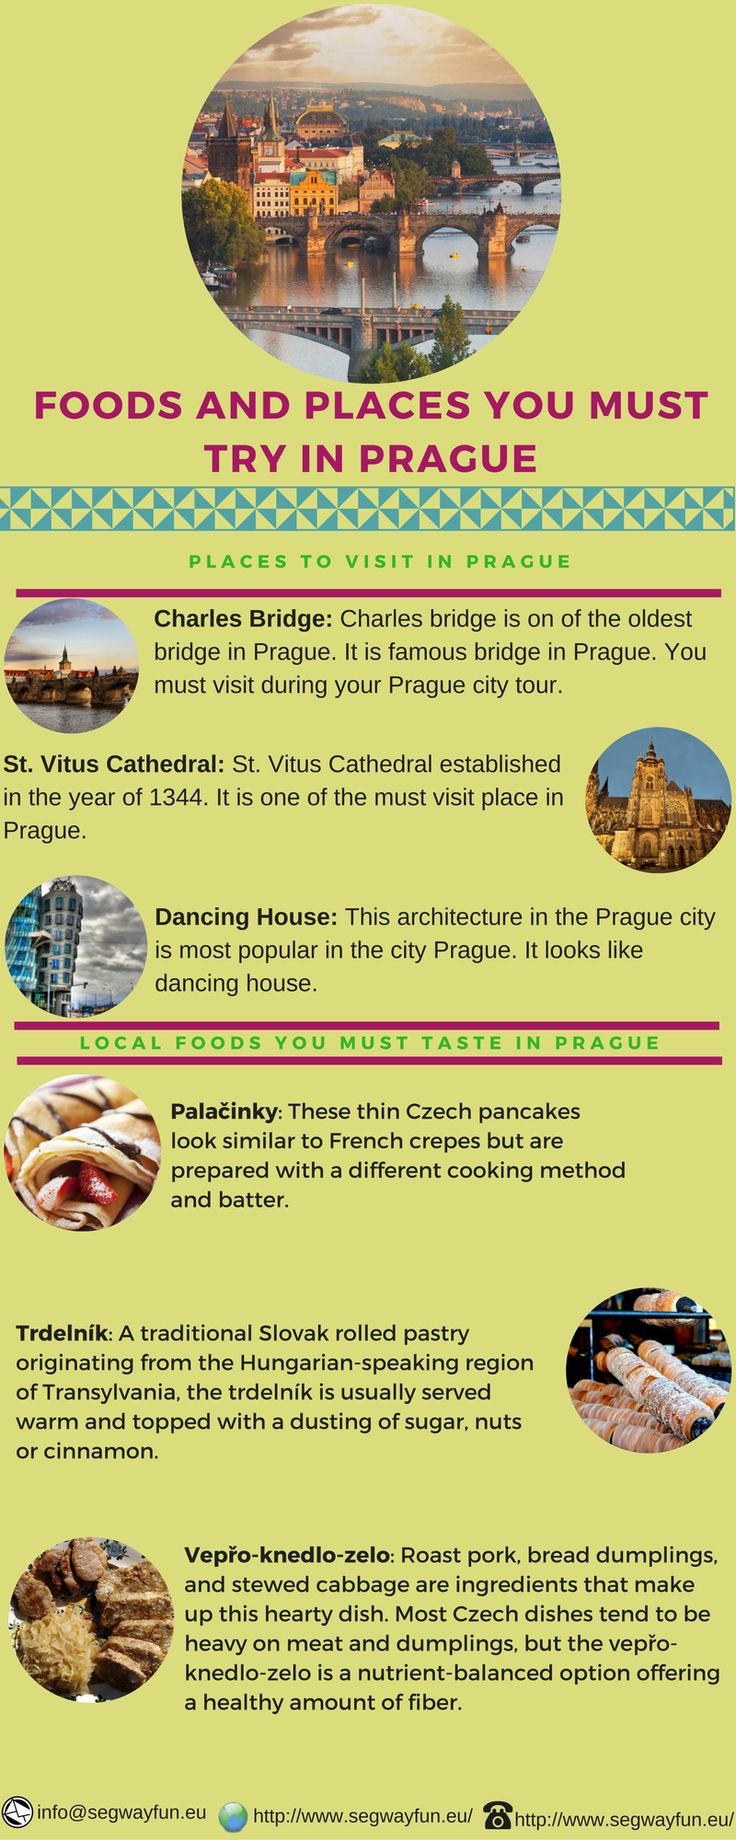 This info-graphics represents the local foods you must try and the places you should visit during your city tour Prague.